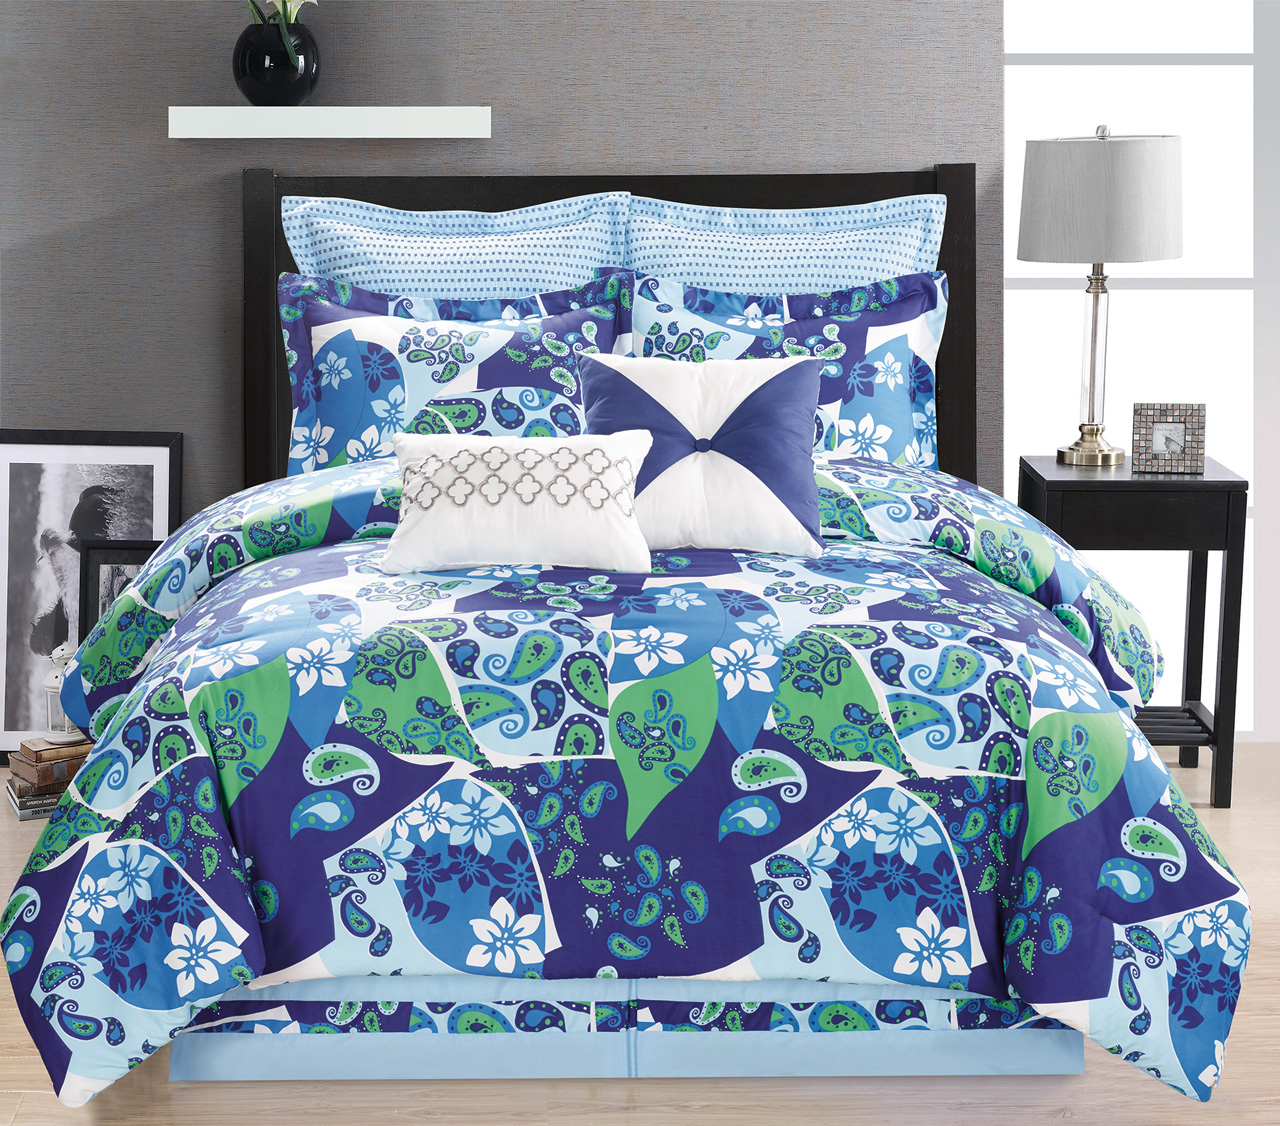 8 piece paisley blue green white comforter set - Blue and green bedding sets ...